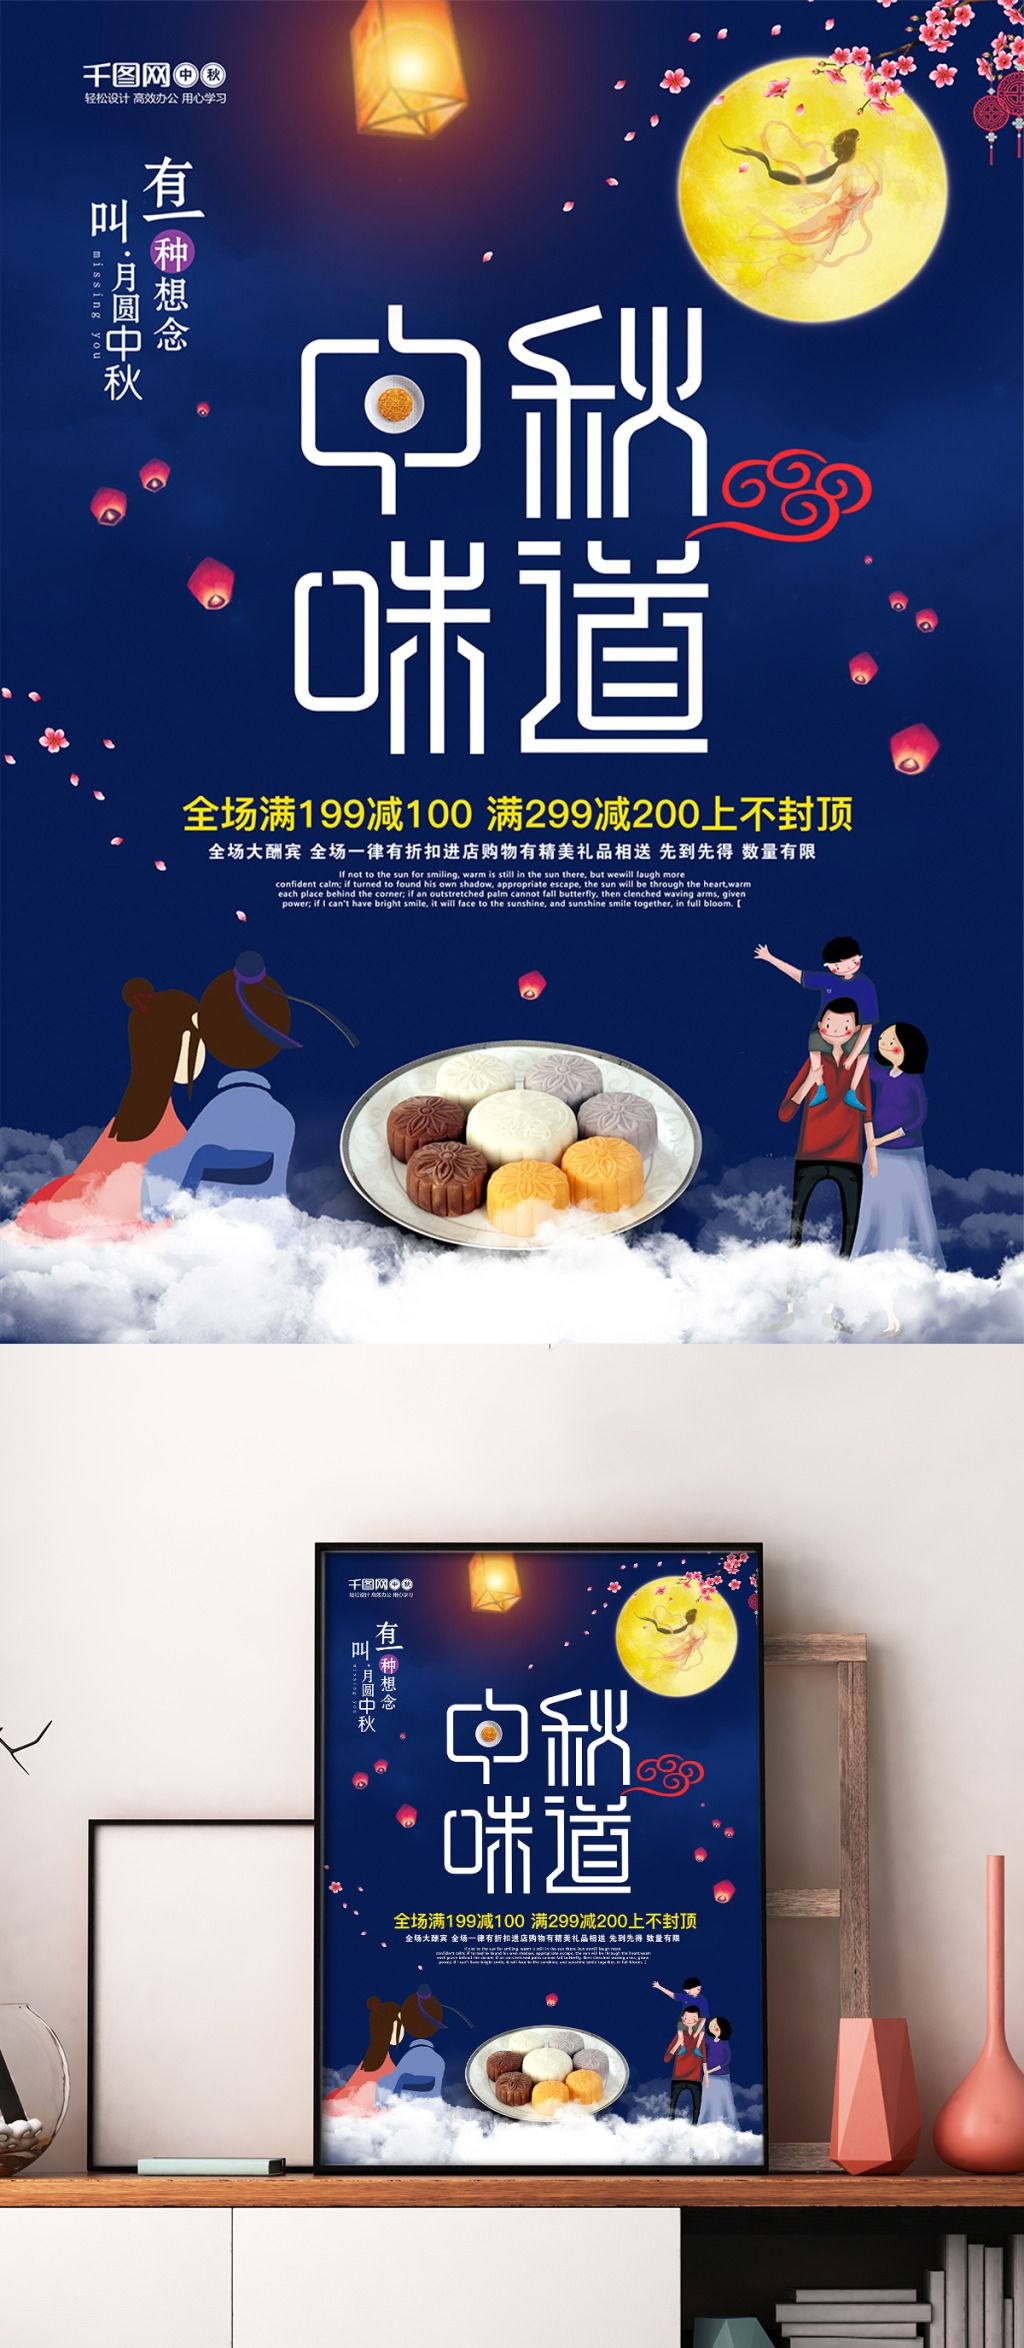 Blue Sky Mid Autumn Festival Mid Autumn Festival Mid Autumn Moon Cake Poster Design Download The Hd Full Version On Heypik Com Heypik Mi Posters Cảm Hứng